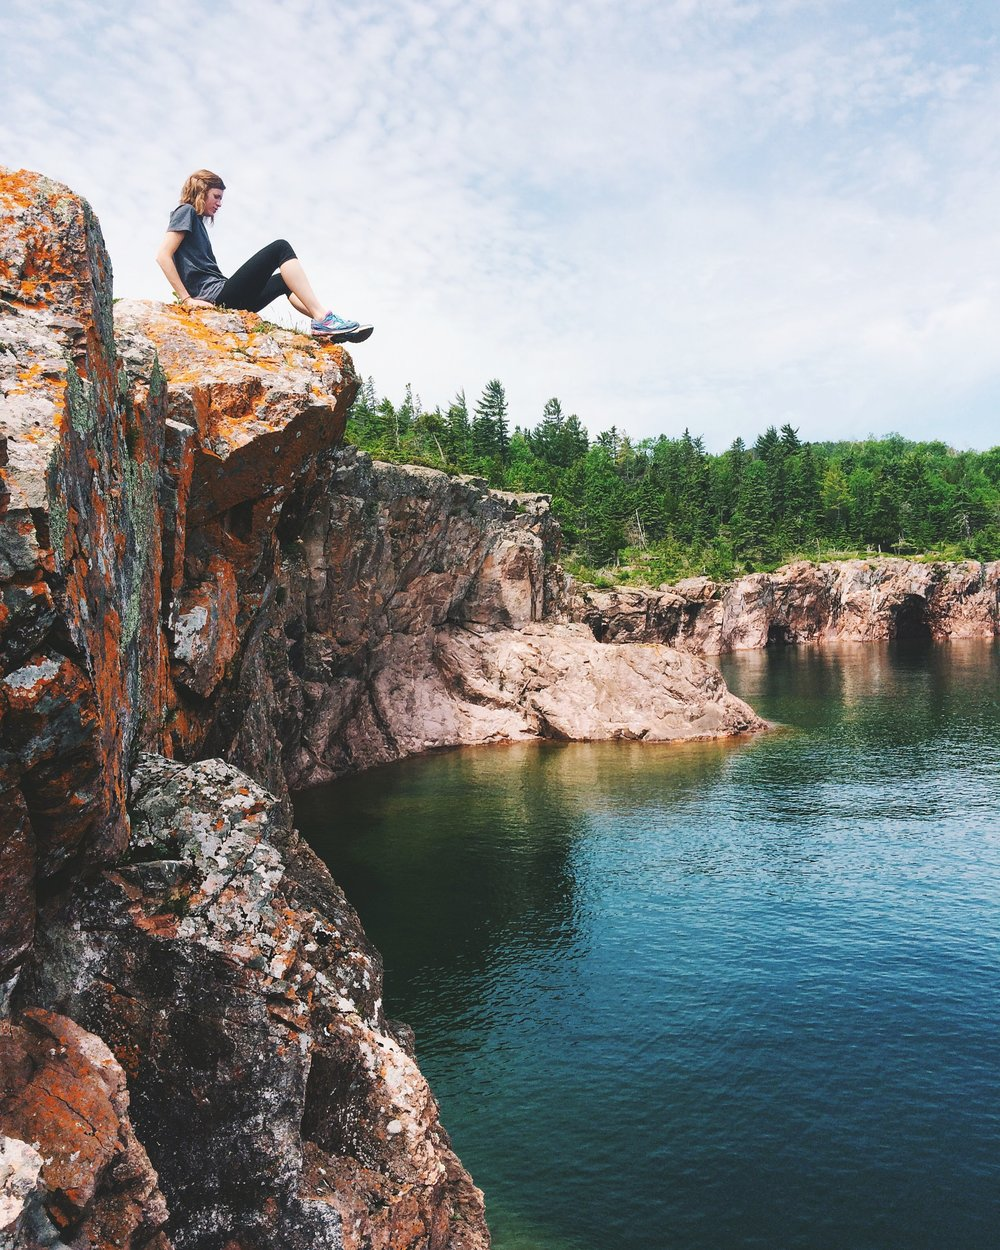 The cliffs at Shovel Point in Tettegouche State Park